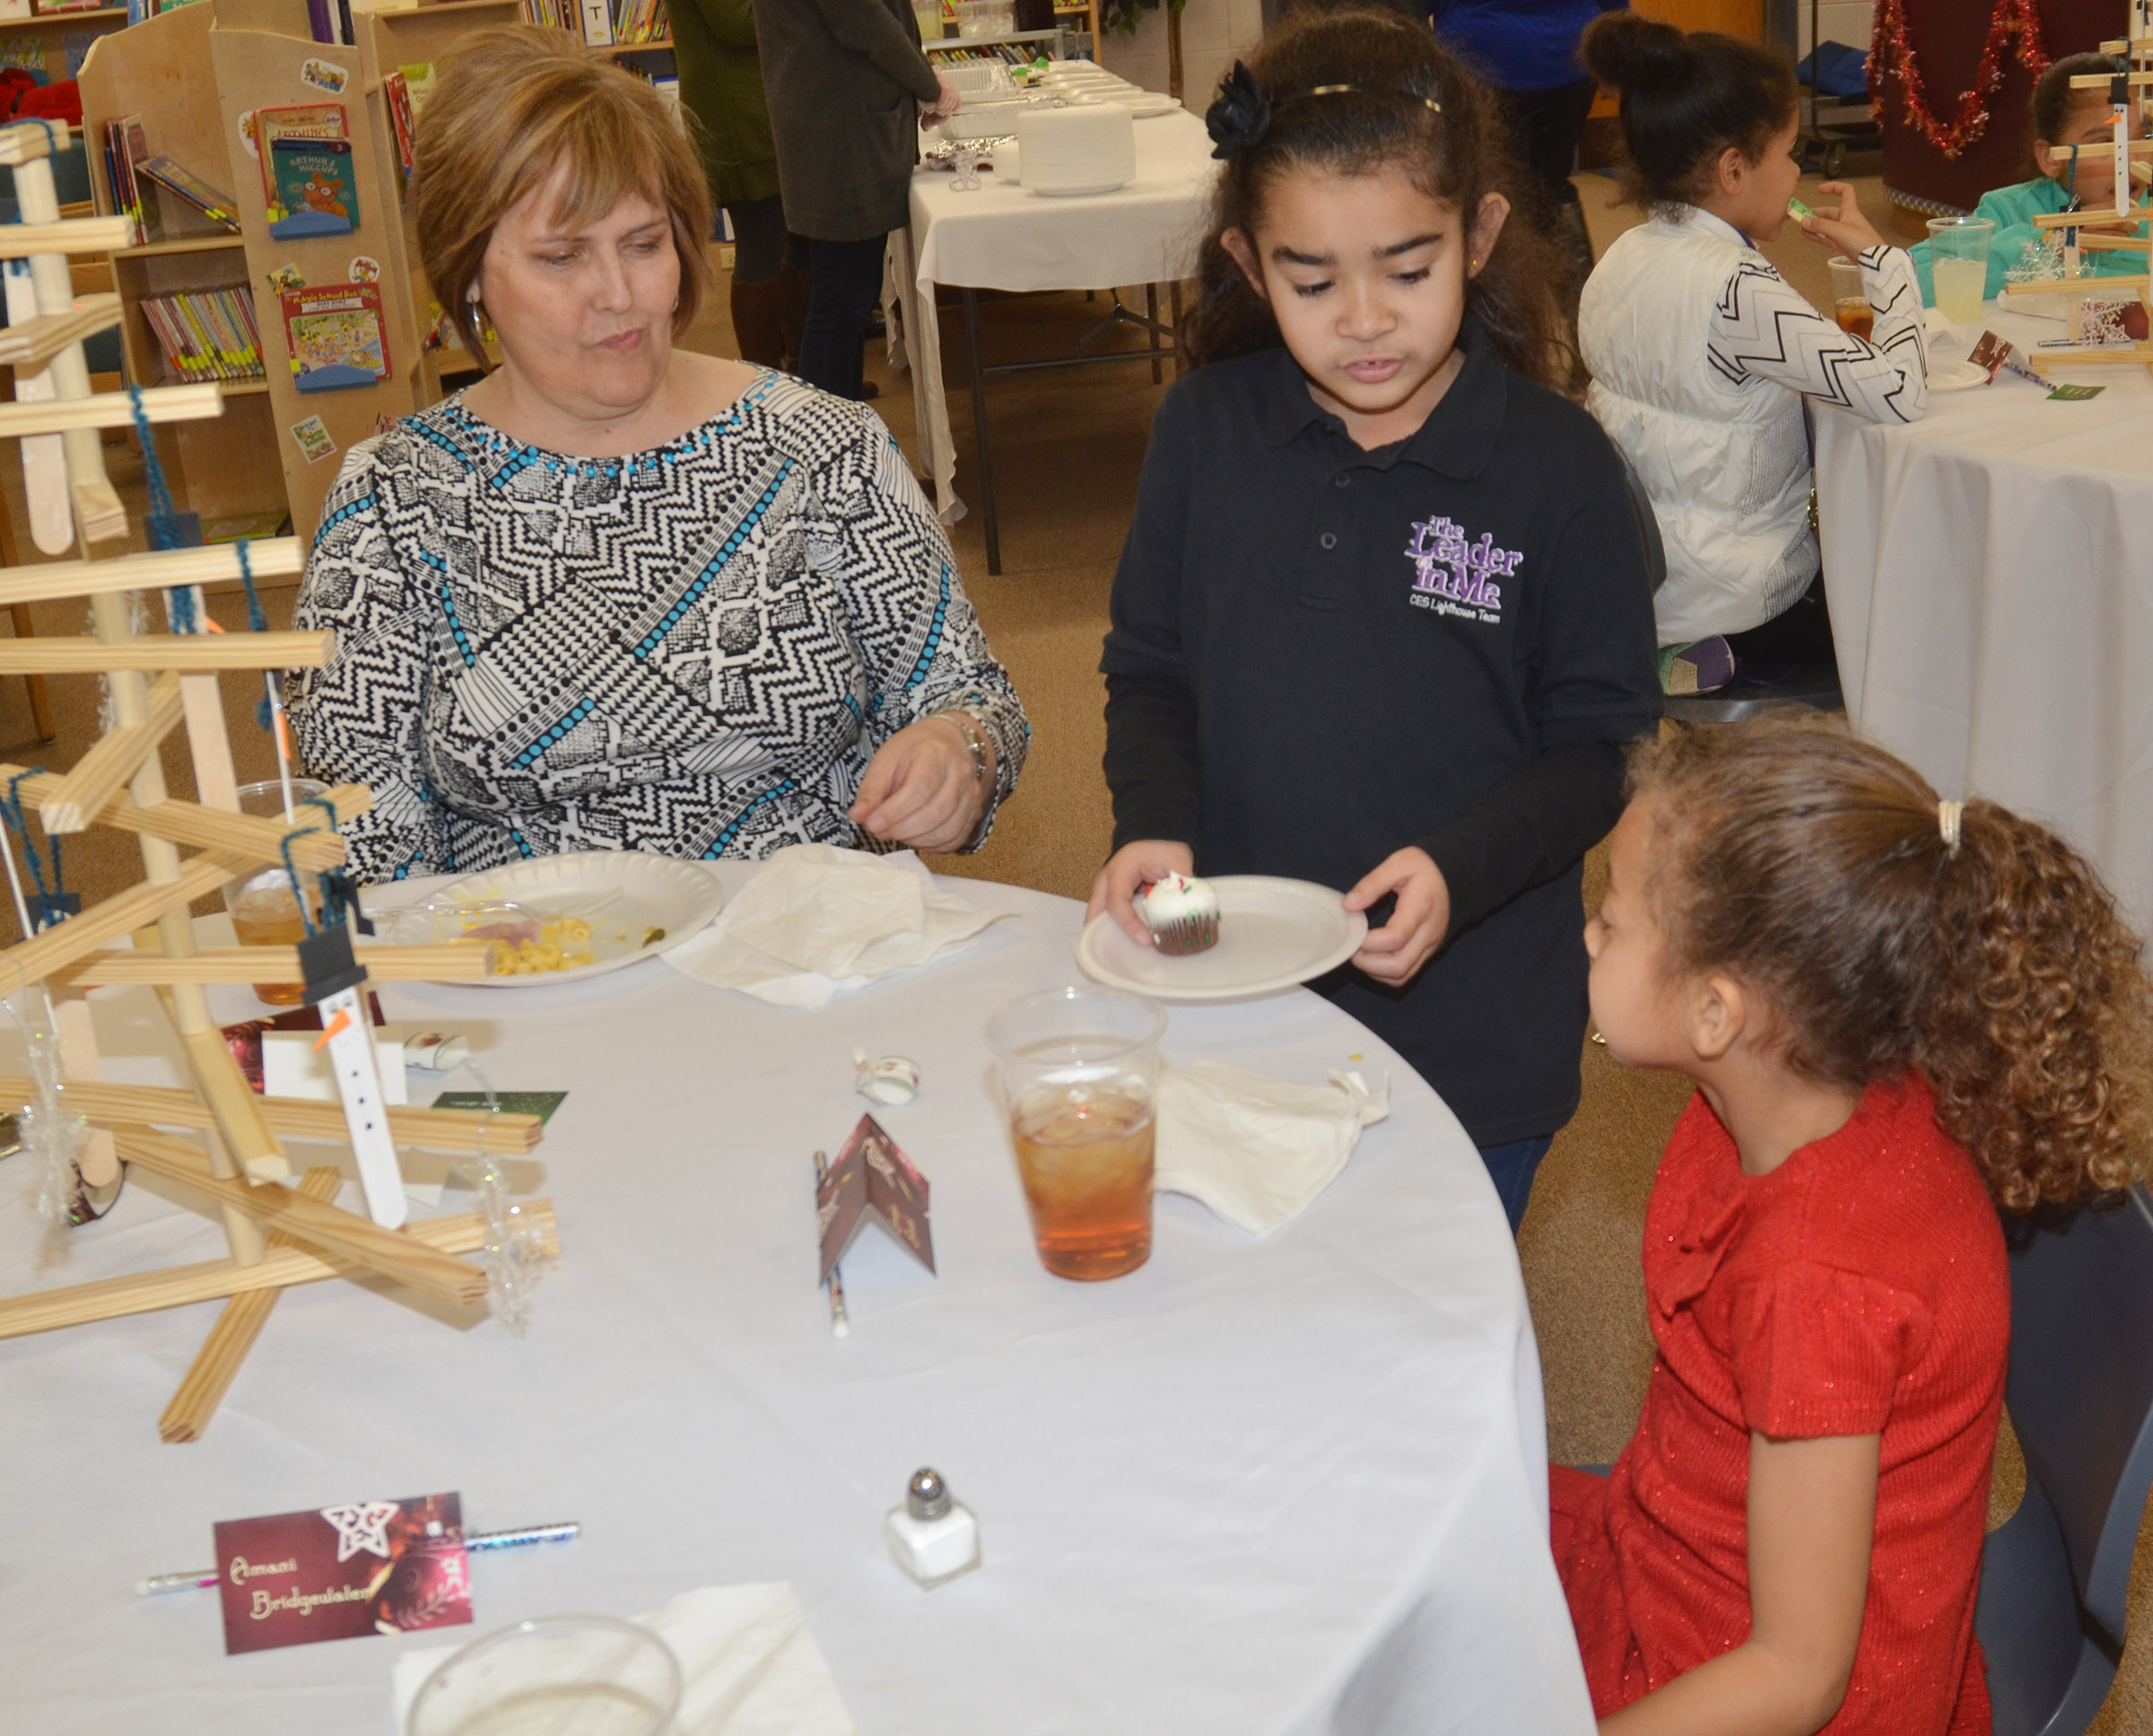 Retired teacher Debbie Edwards has lunch with CES first-grader Londyn Smith, as second-grader Sophia Santos serves dessert.